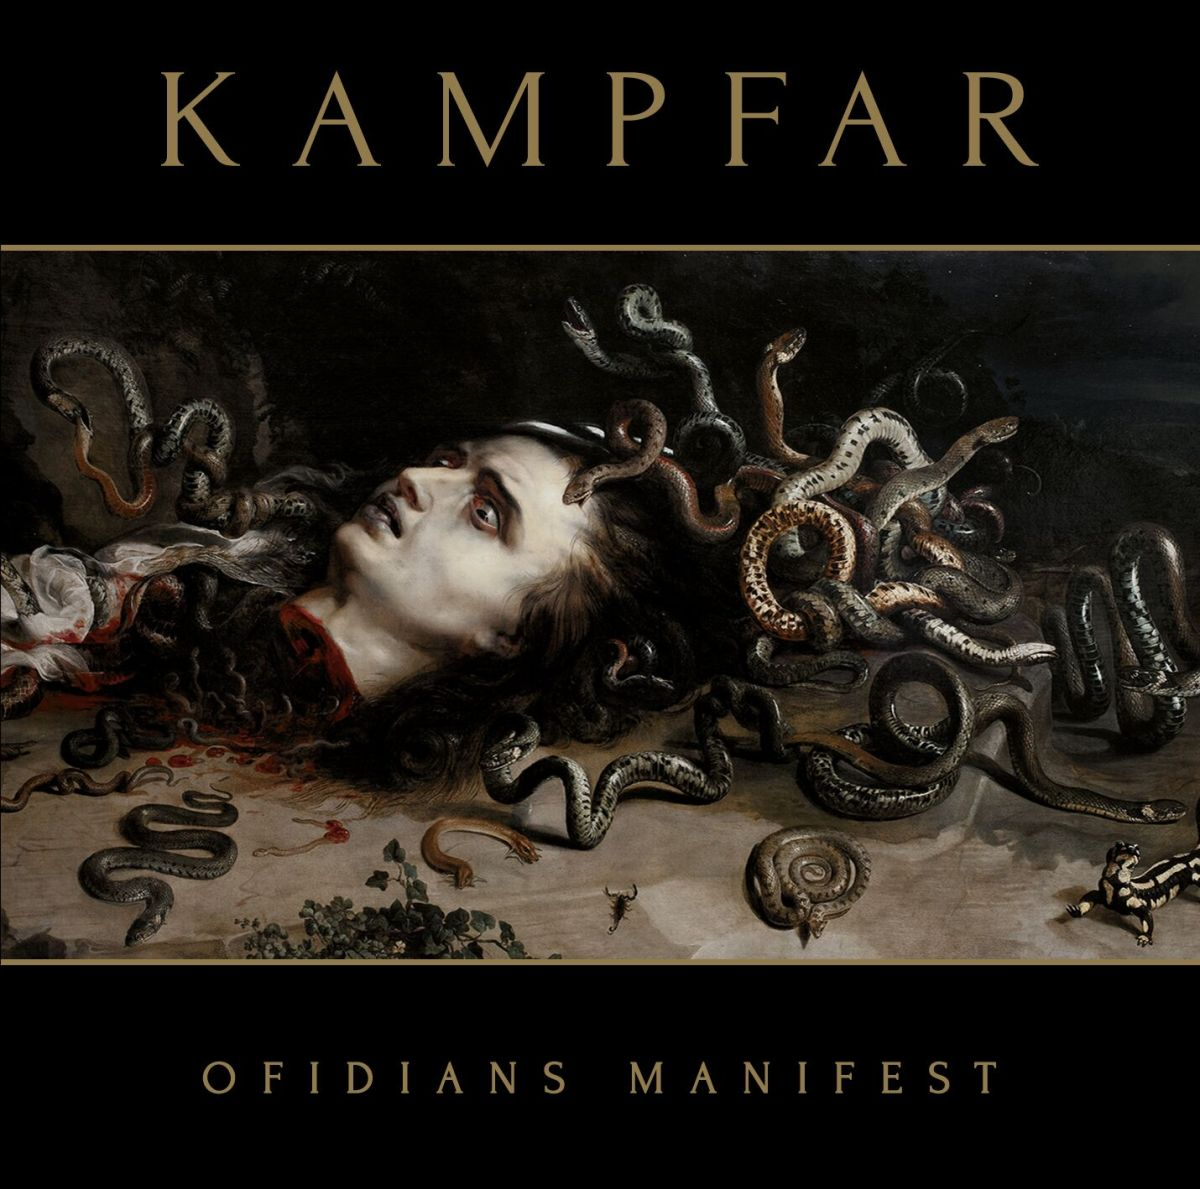 "Kampfar ""Ofidiands Manifest"" To Be Released On May 3rd"